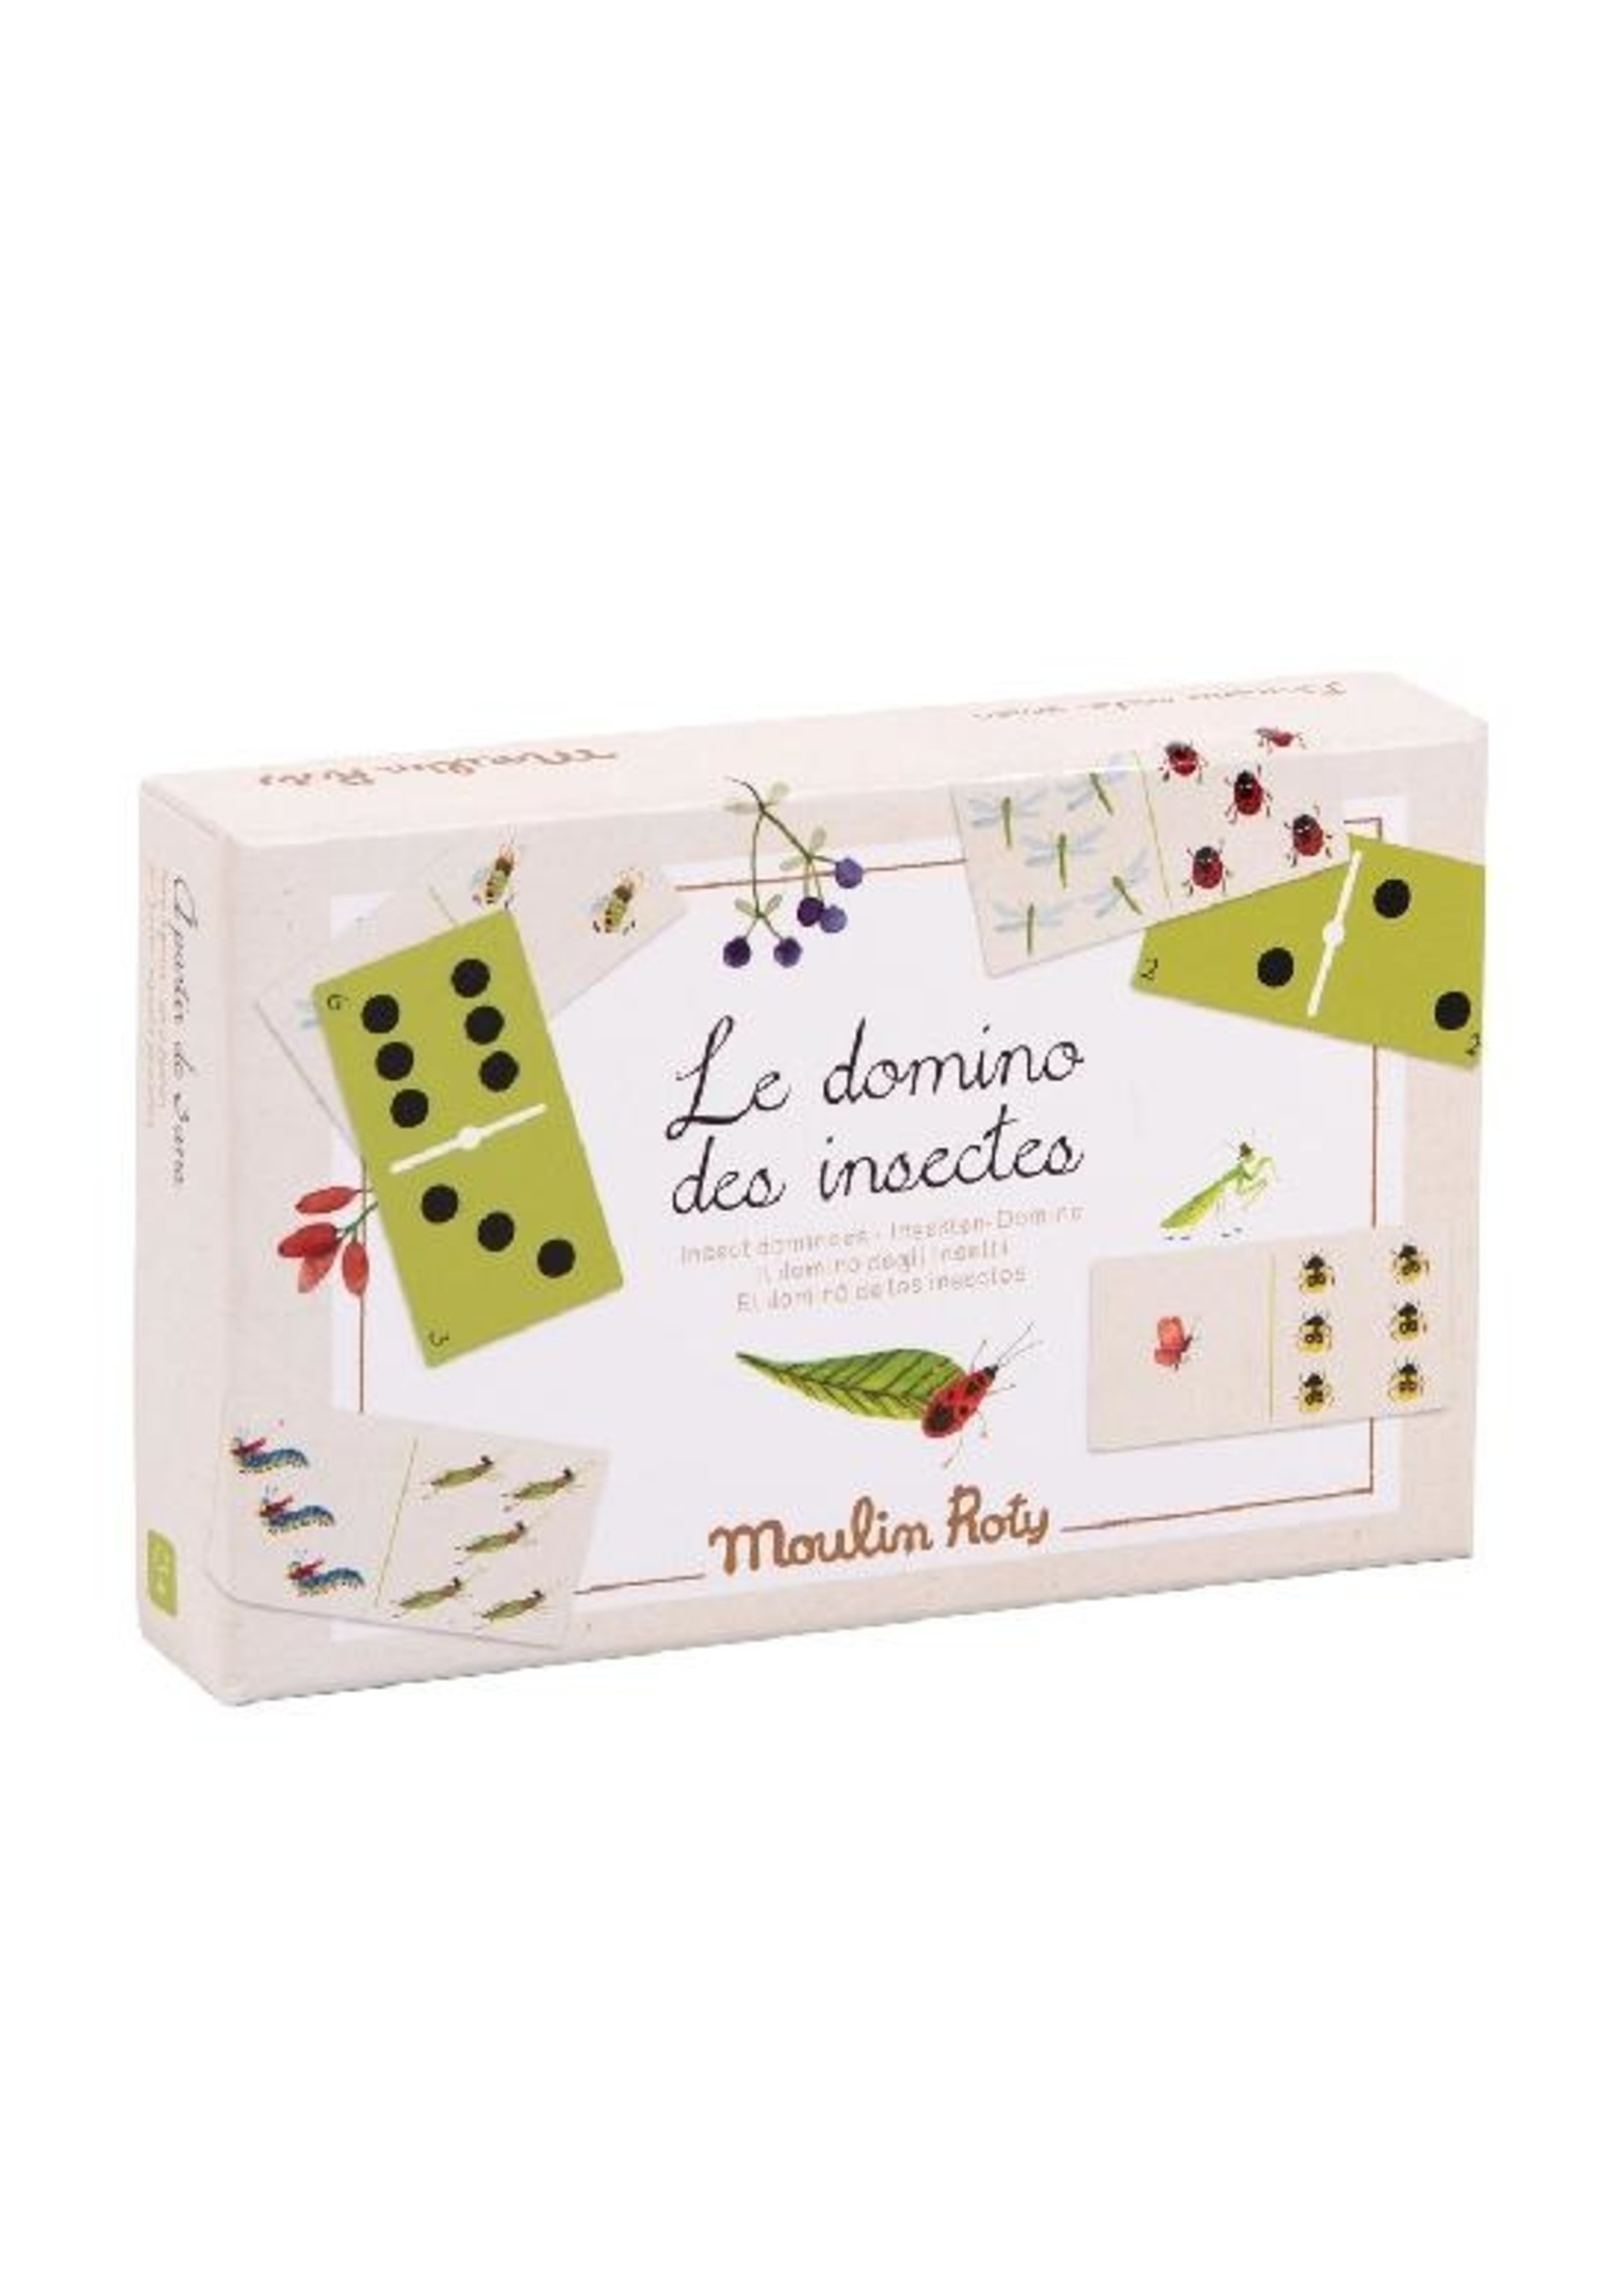 Moulin Roty Le domino des insectes